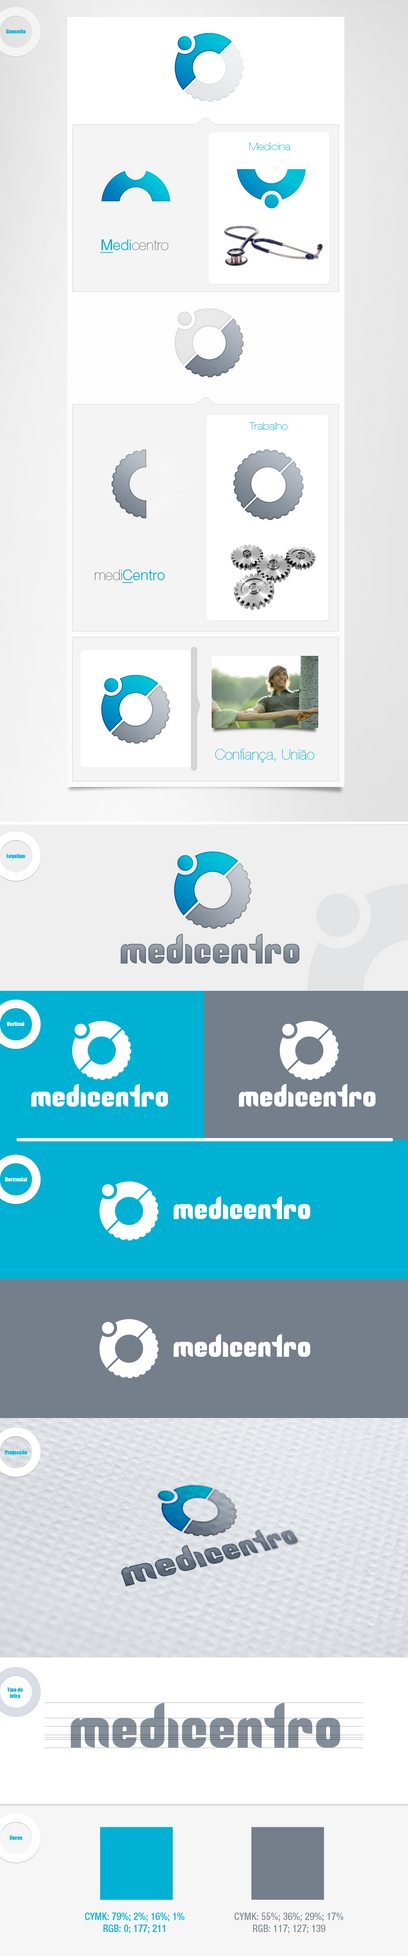 Medicentro 3 logo by devzign